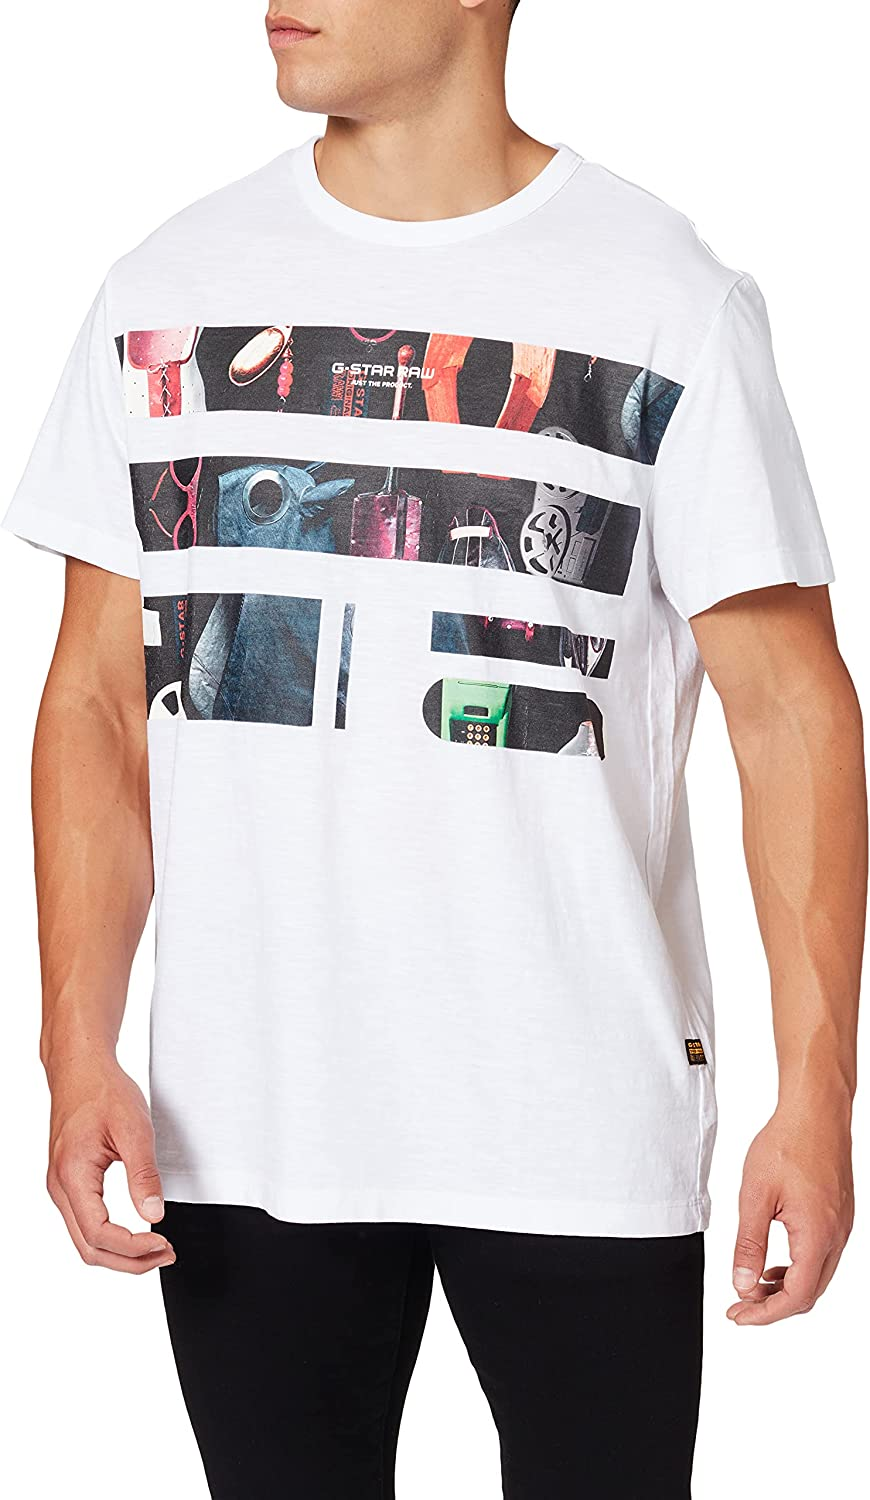 G-Star Raw Luxury Men's Photo Originals T-Shirt We OFFer at cheap prices